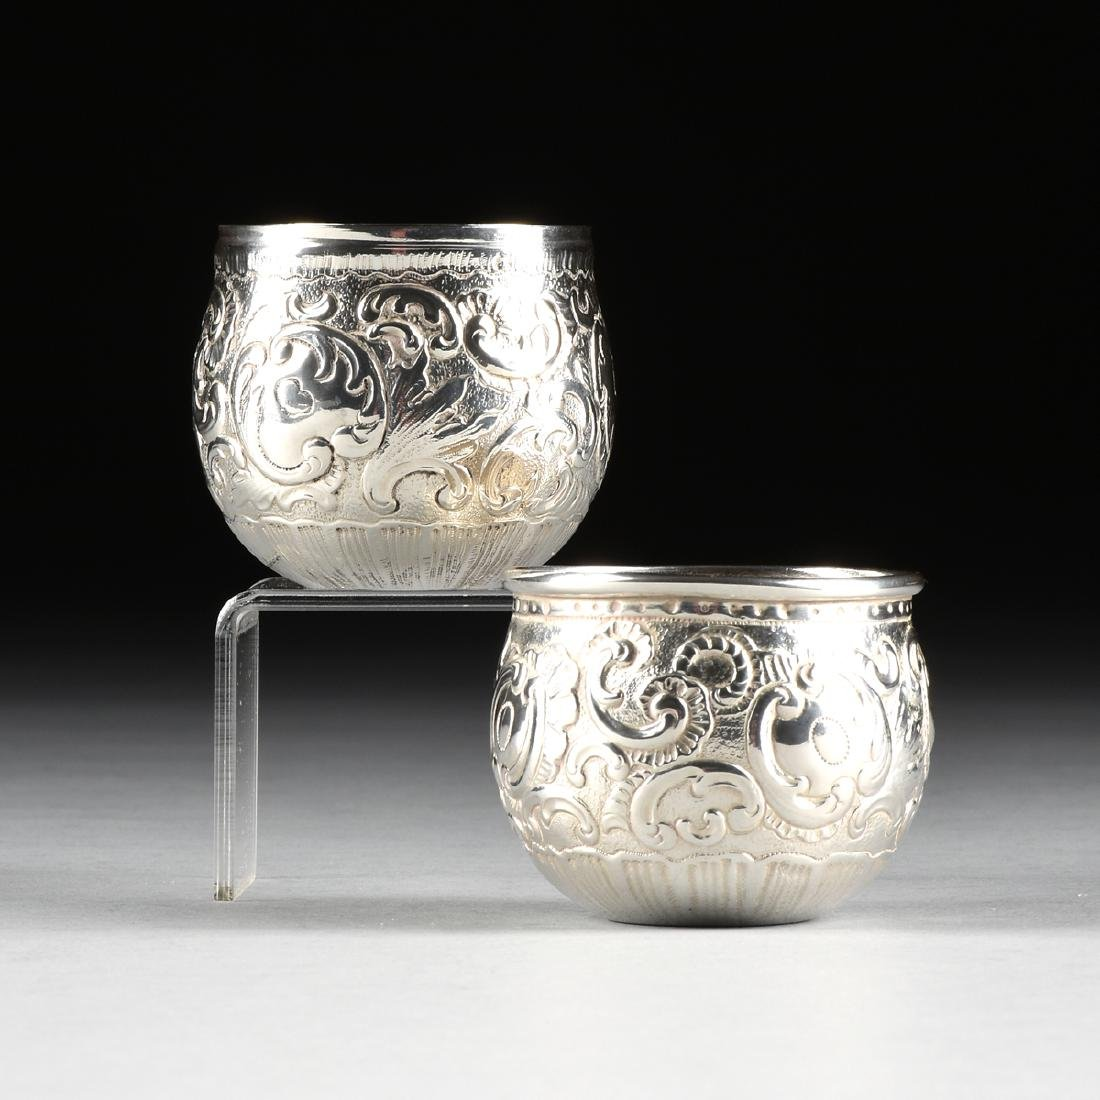 TWO SOUTH AMERICAN 900 STANDARD SILVER CUPS, POSSIBLY